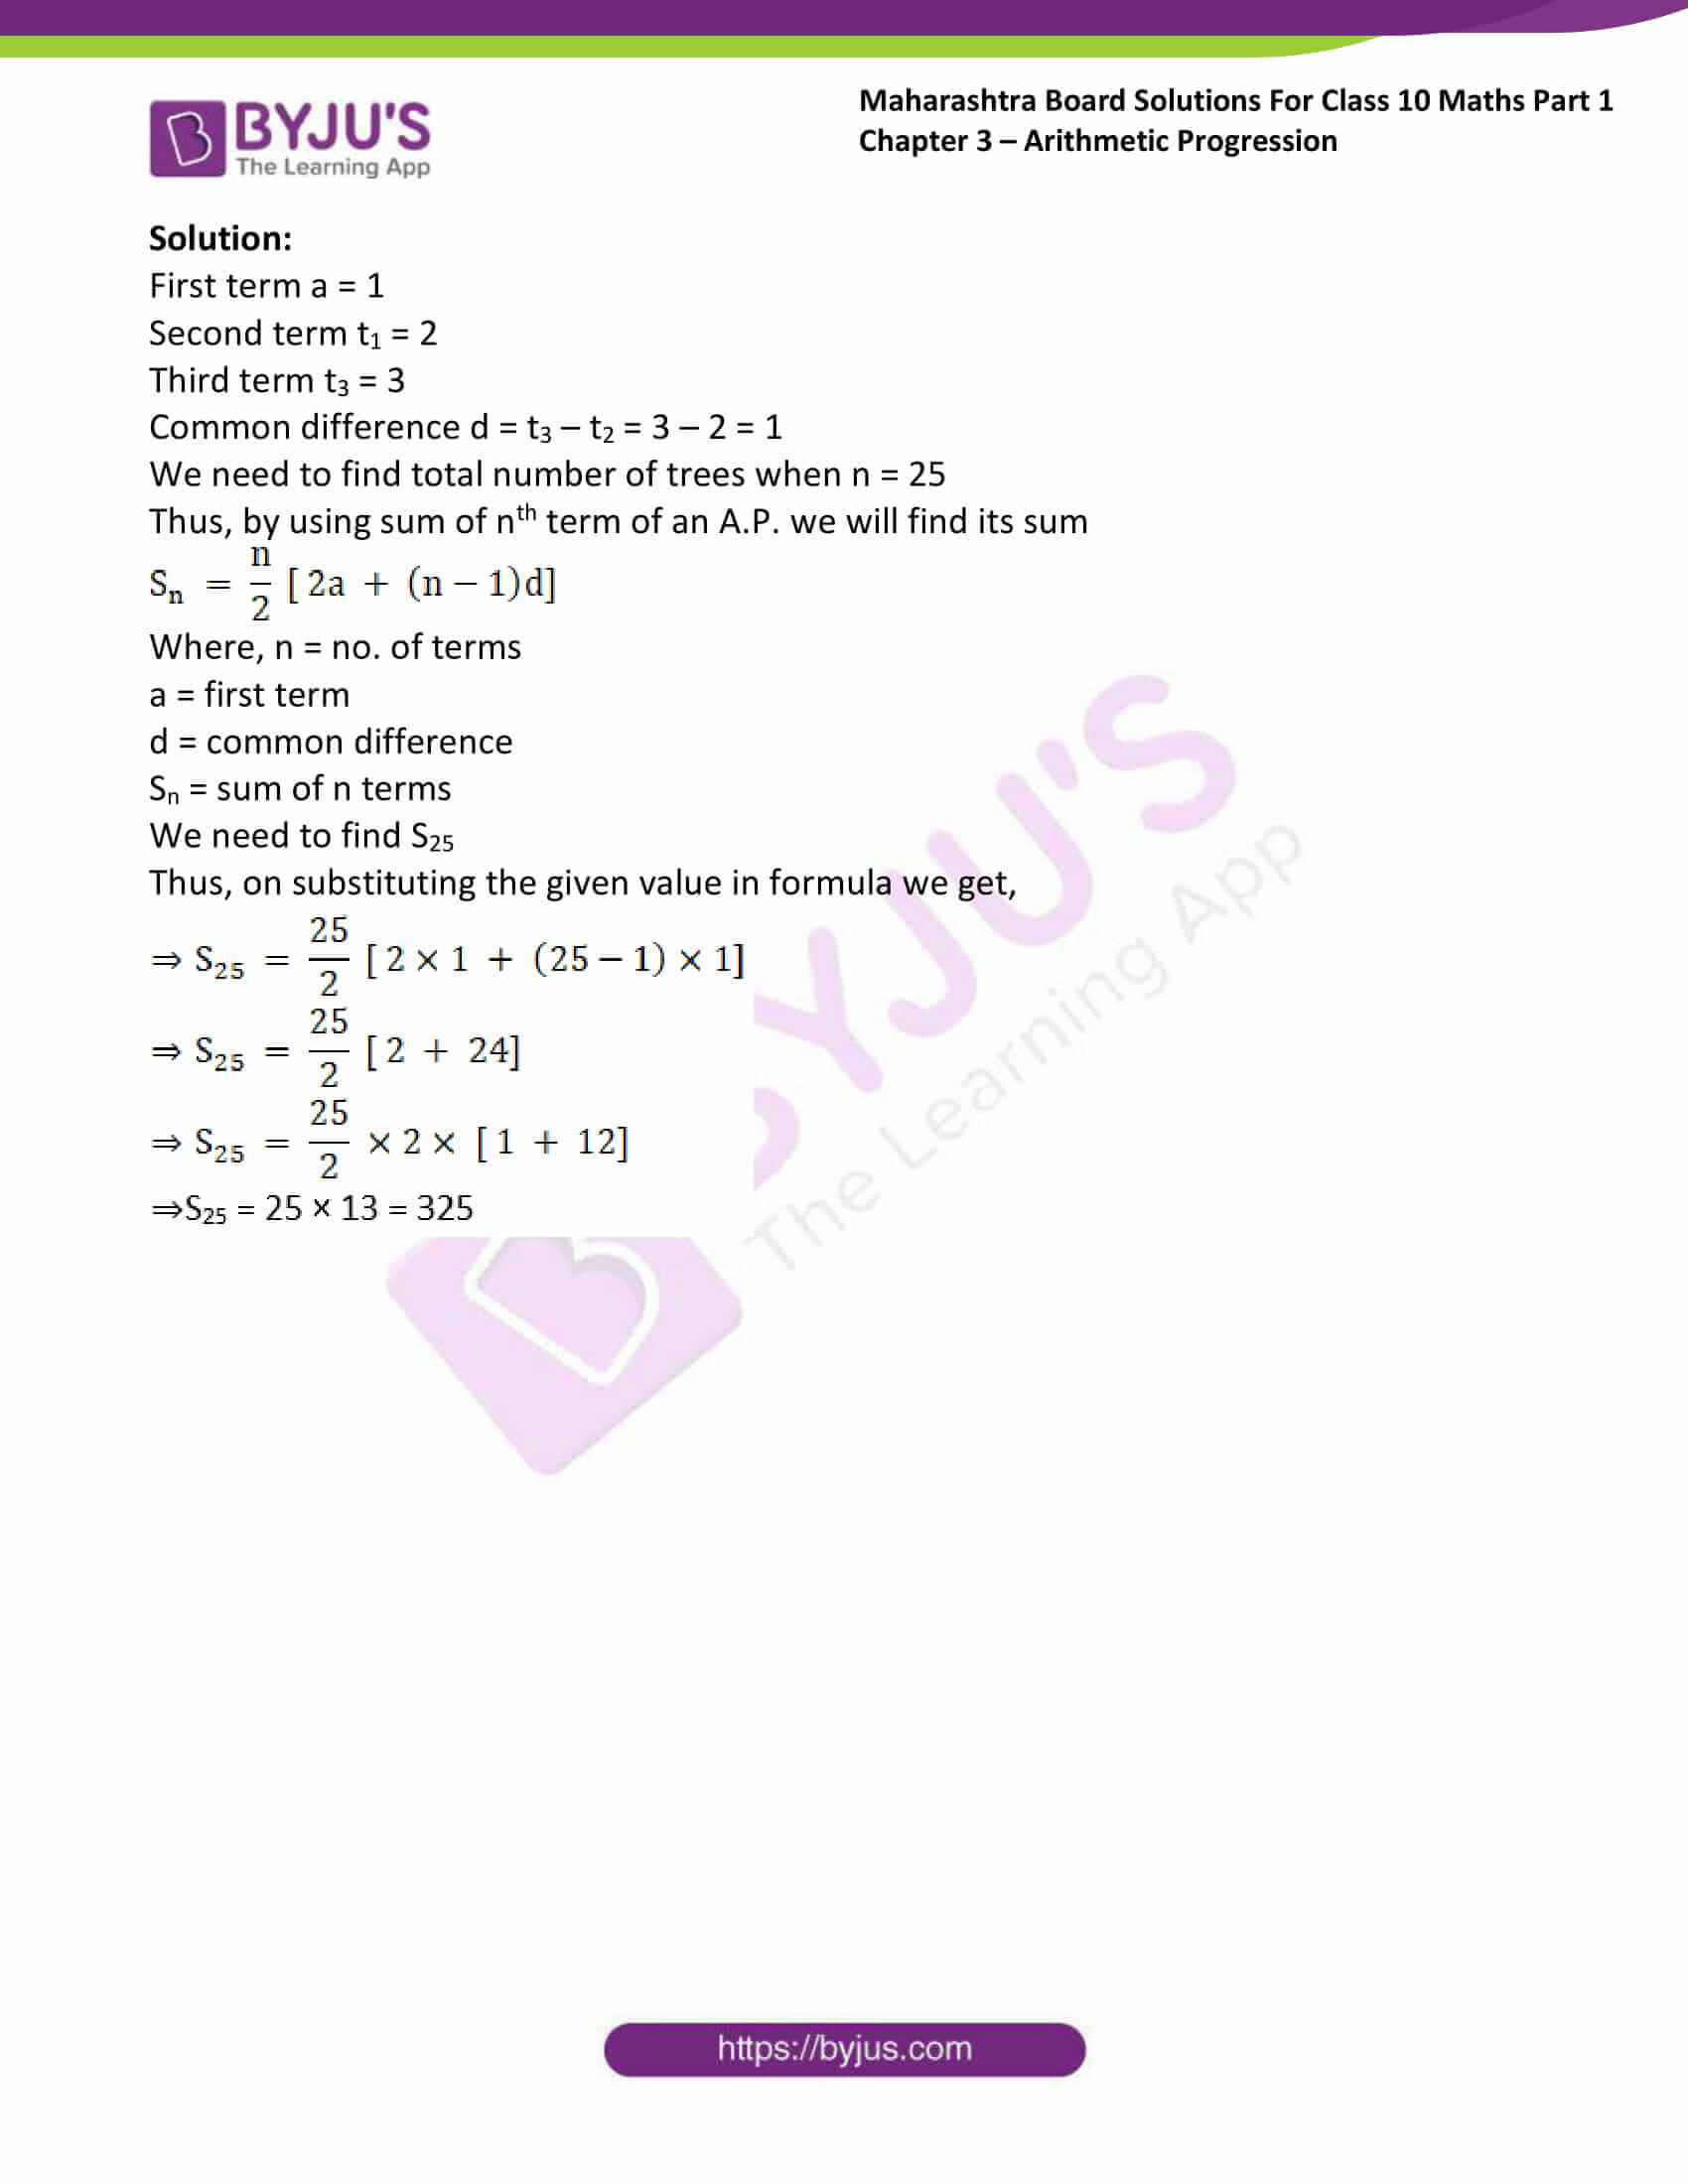 msbshse solutions class 10 maths part 1 chapter 3 30